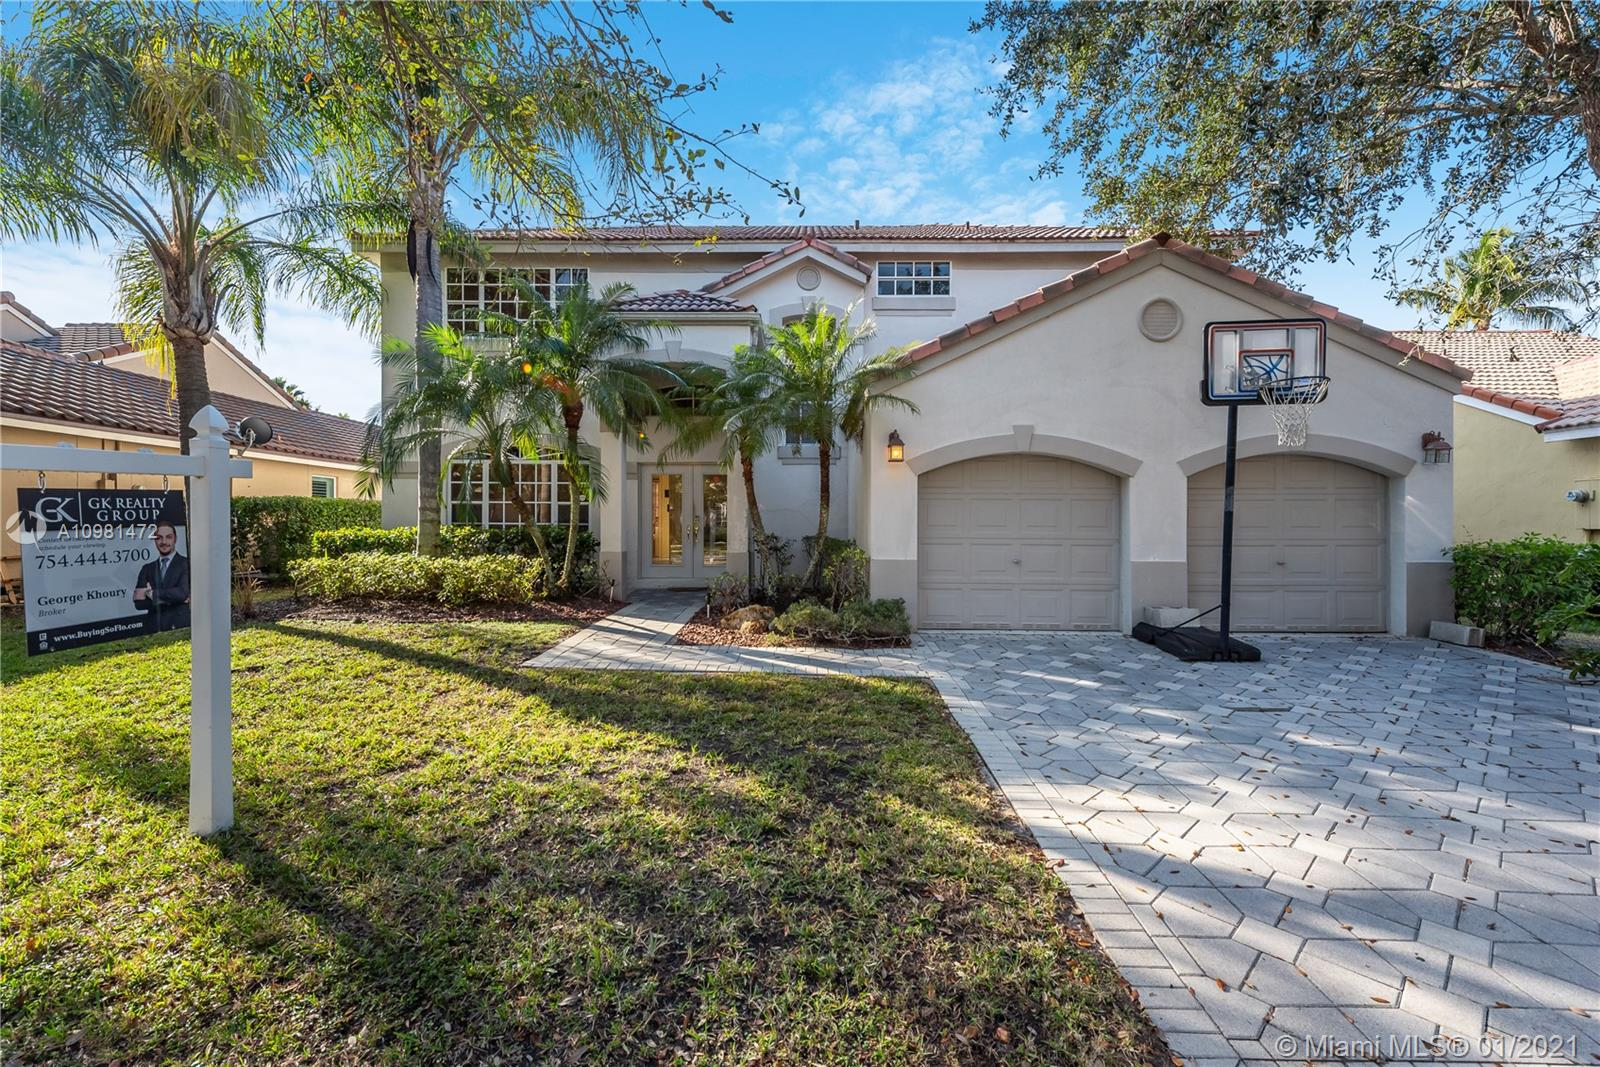 Beautiful and move-in ready 2 story home with a spacious backyard and a pool located in a family oriented  community in Weston. This home features a great layout with formal living area and dining area, upgraded kitchen with granite counter tops & SS appliances. Tile flooring throughout the main living areas downstairs and wood flooring upstairs and in the bedrooms. Master bedroom with an office space space or sitting area, walk-in closets and a master bathroom with dual sinks, tiled stand-up shower and a soaking tub. Walk out to your large & private backyard that features a paved patio area with an overhang, a grand Pool with a Jacuzzi and lots of yard space.